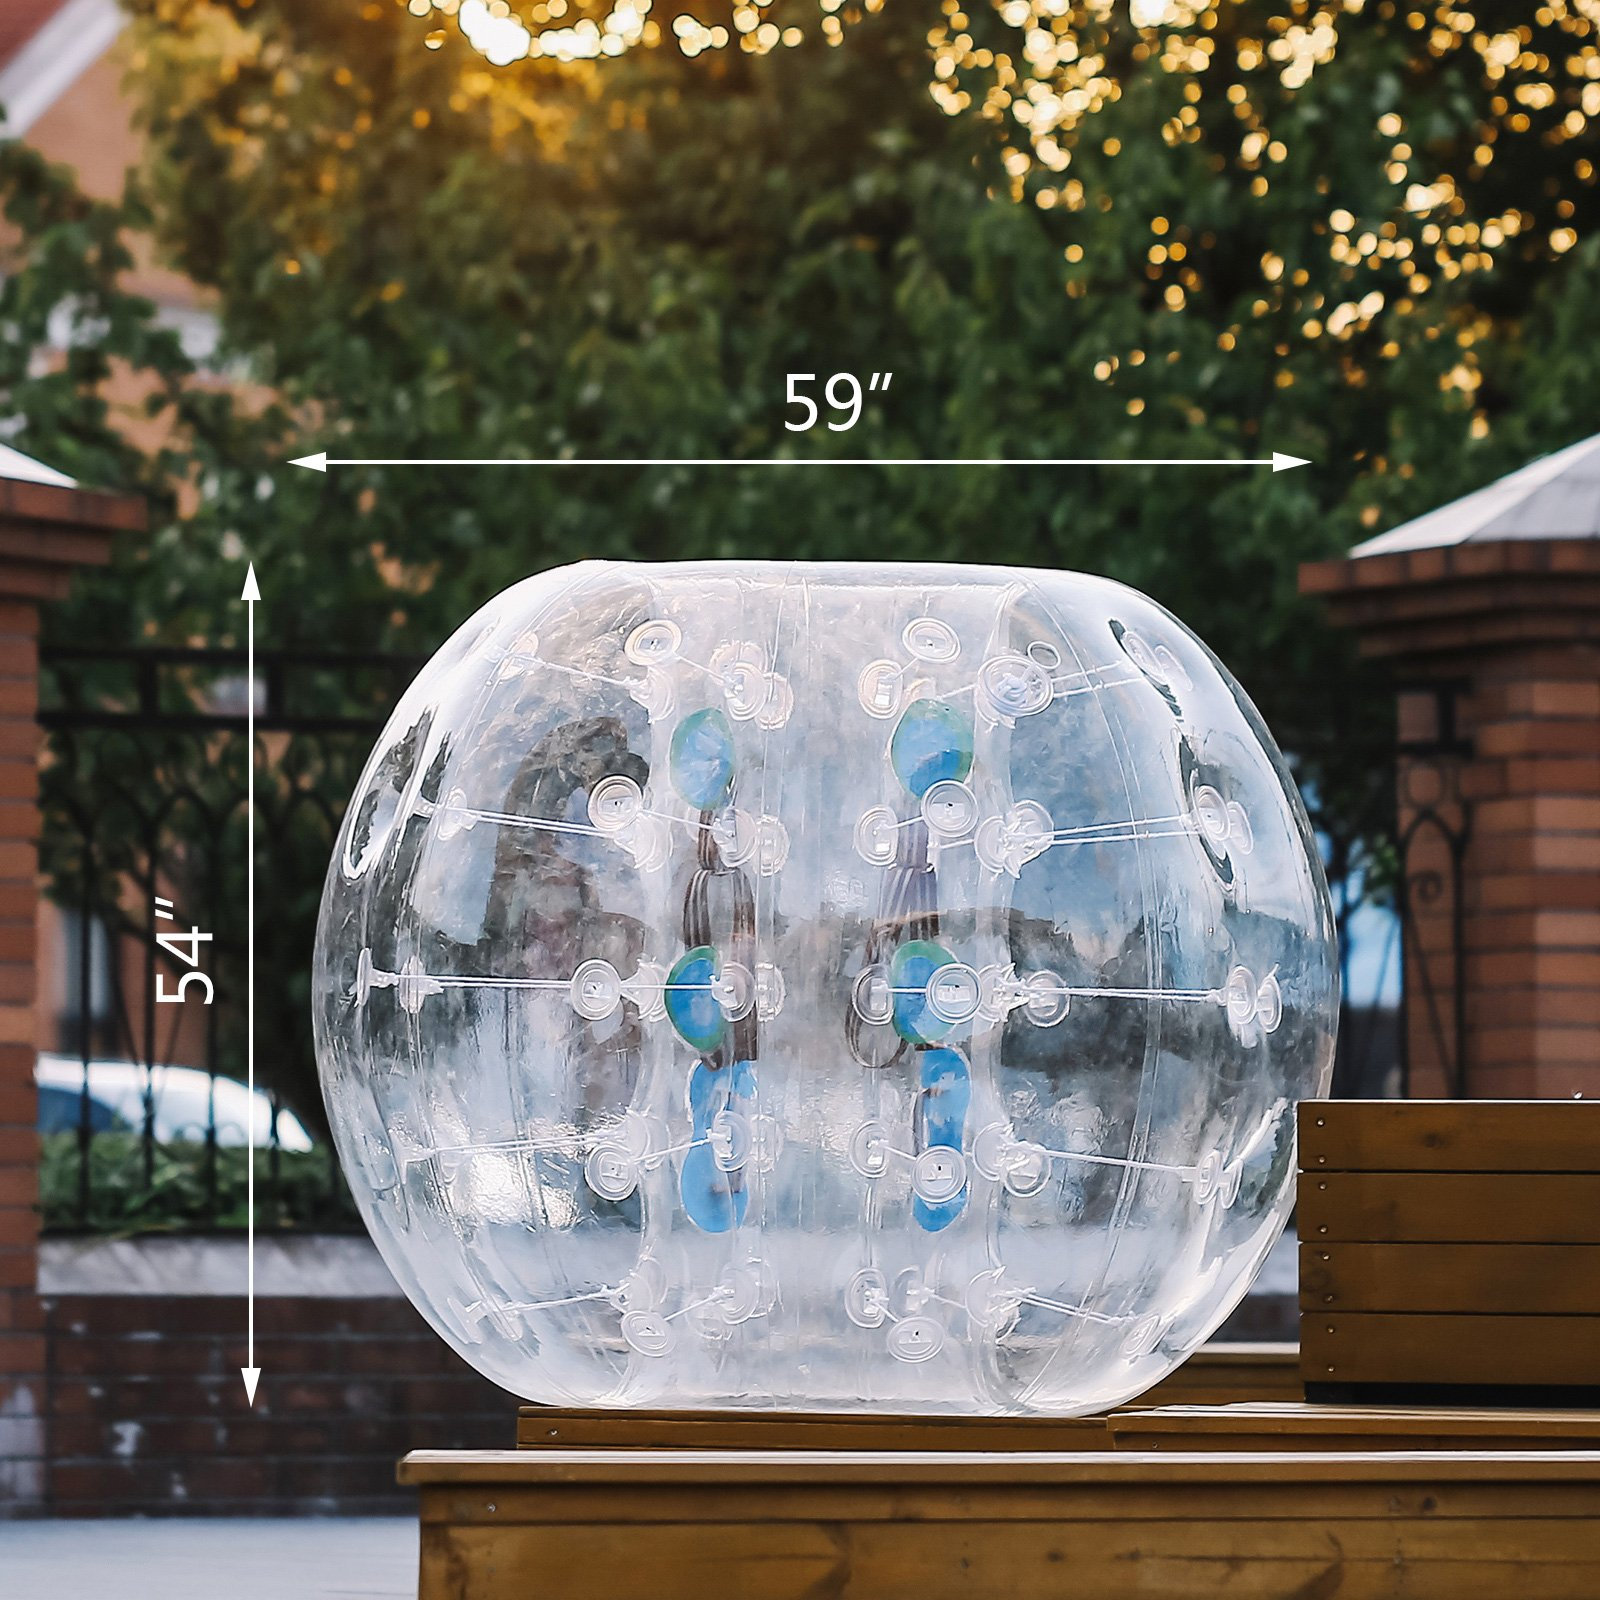 Happybuy Inflatable Bumper Ball 1.2M/4ft 1.5M/5ft Diameter Bubble Soccer Ball Blow Up Toy in 5 Min Inflatable Bumper Bubble Balls for Adults or Child (5ft) by Happybuy (Image #3)